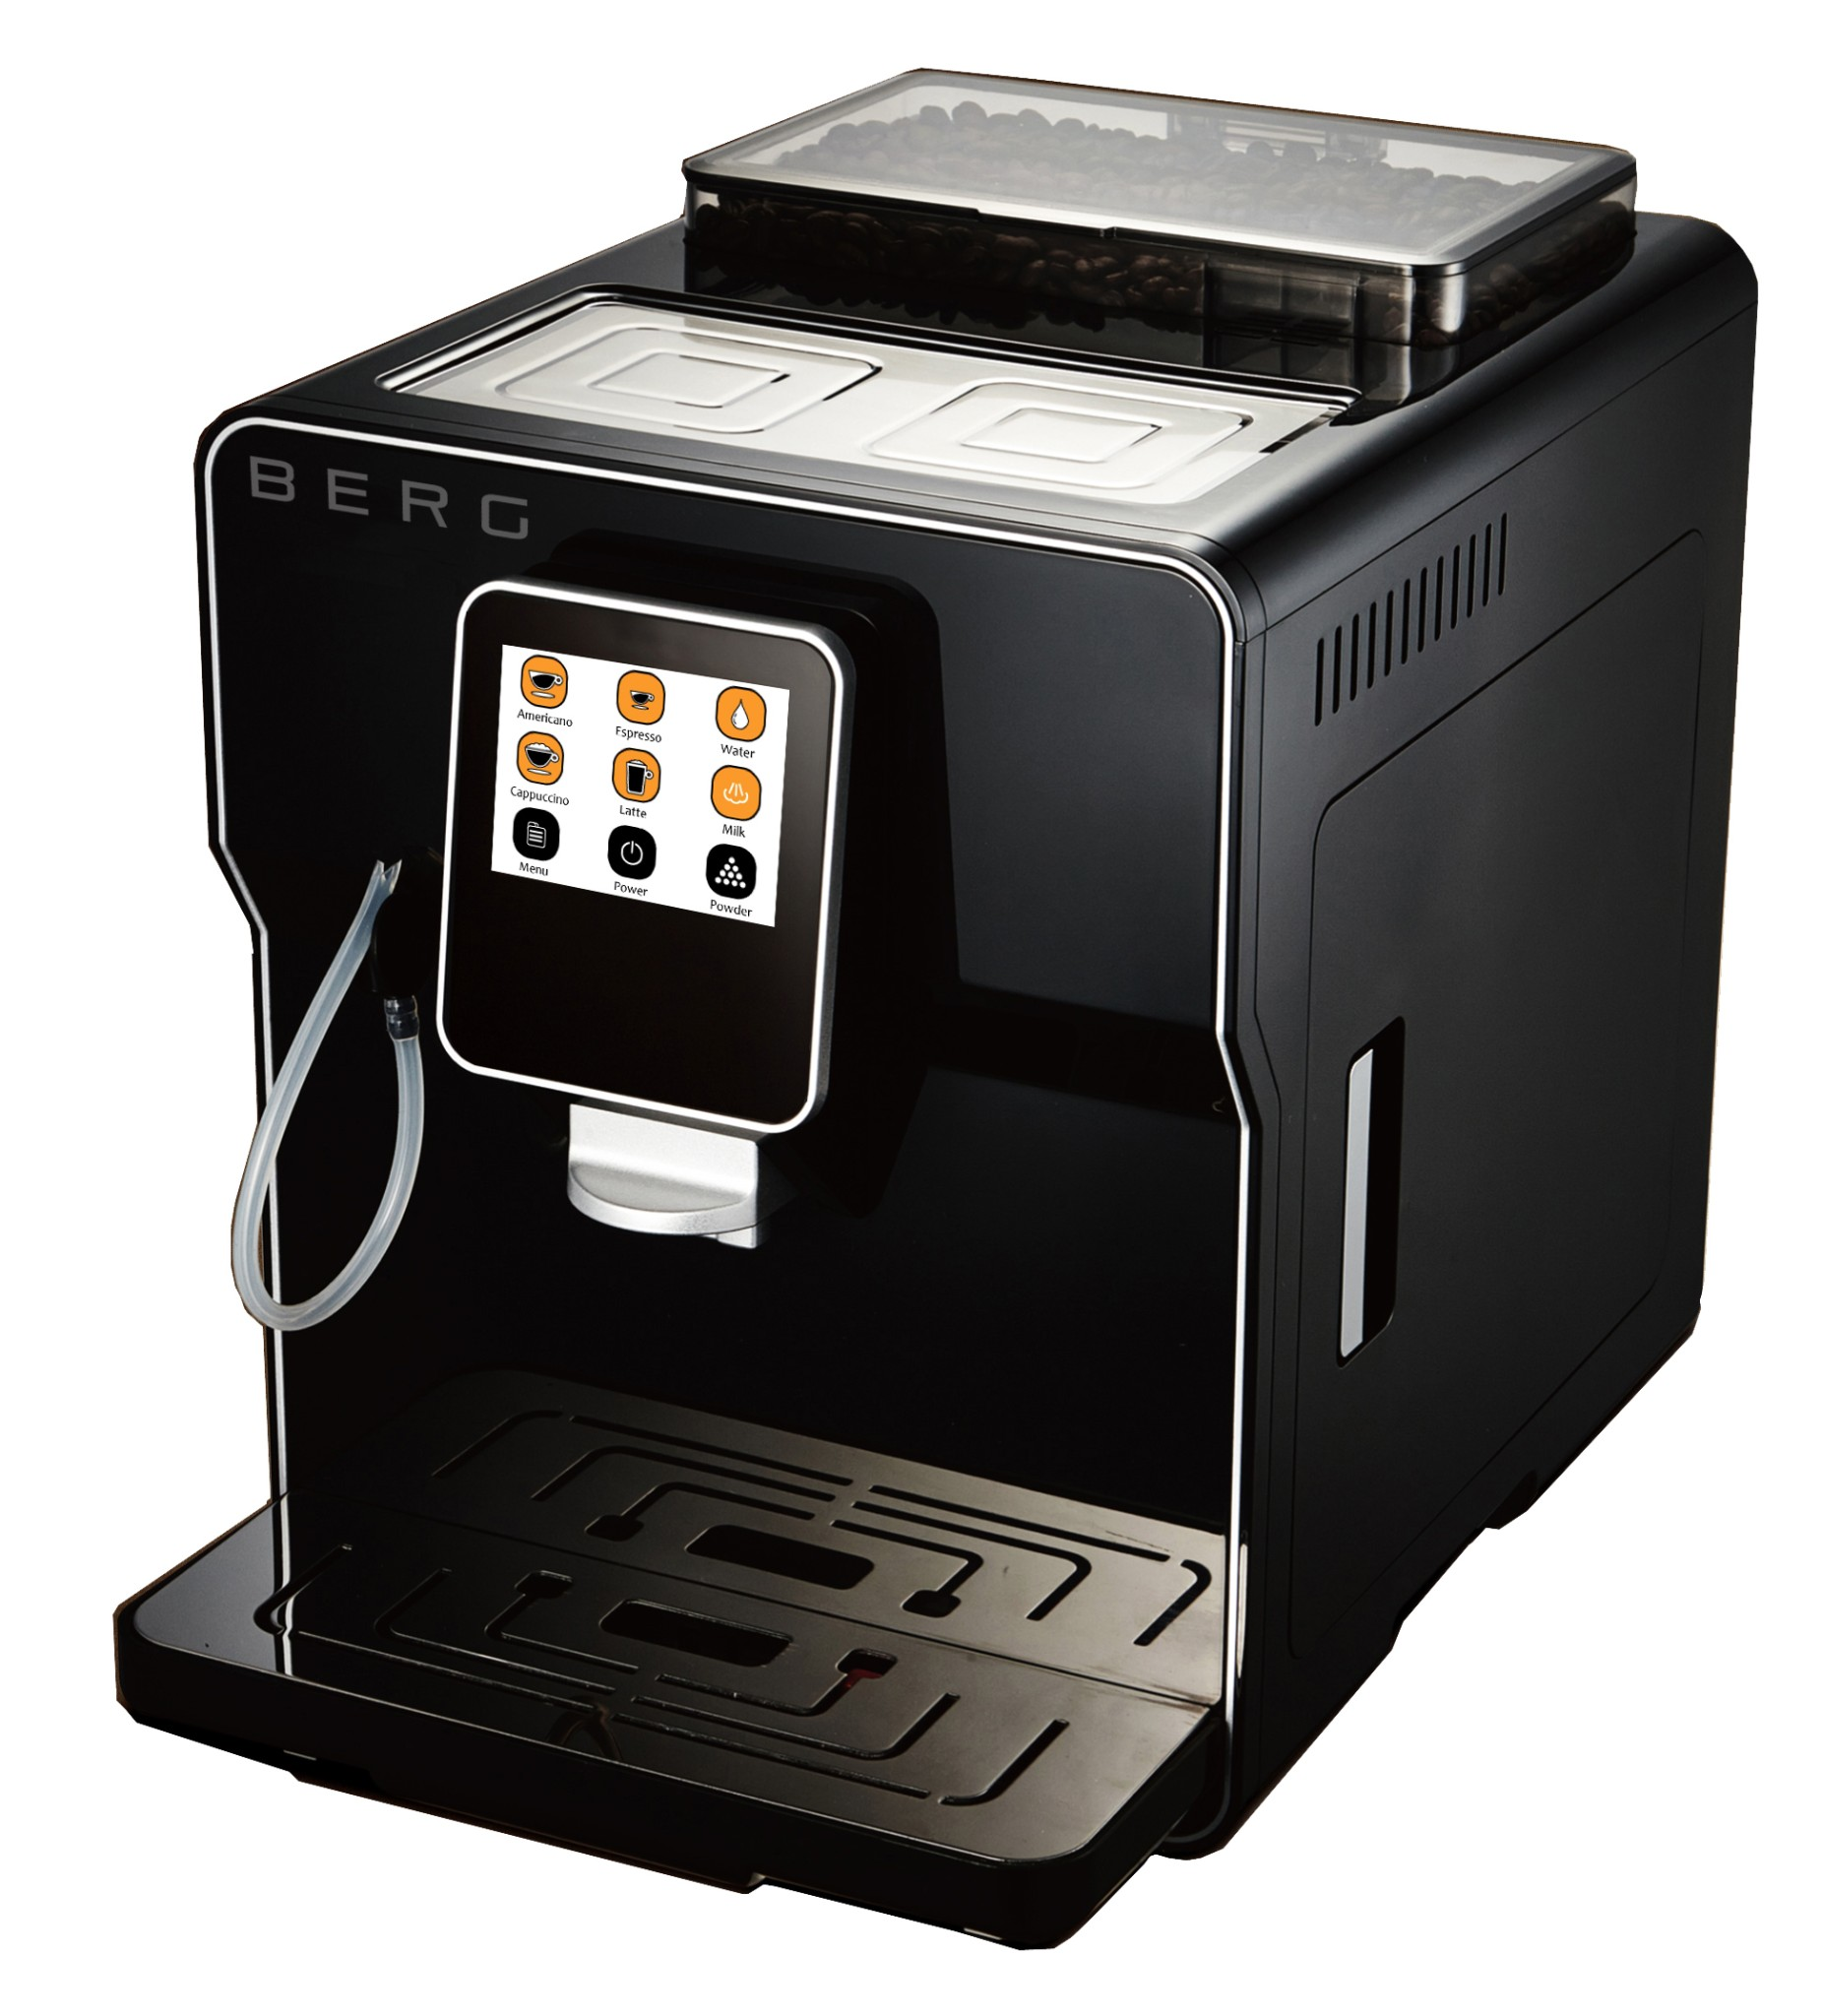 BERG Toccare Uno - Automatic One Touch Bean to Cup Coffee Machine